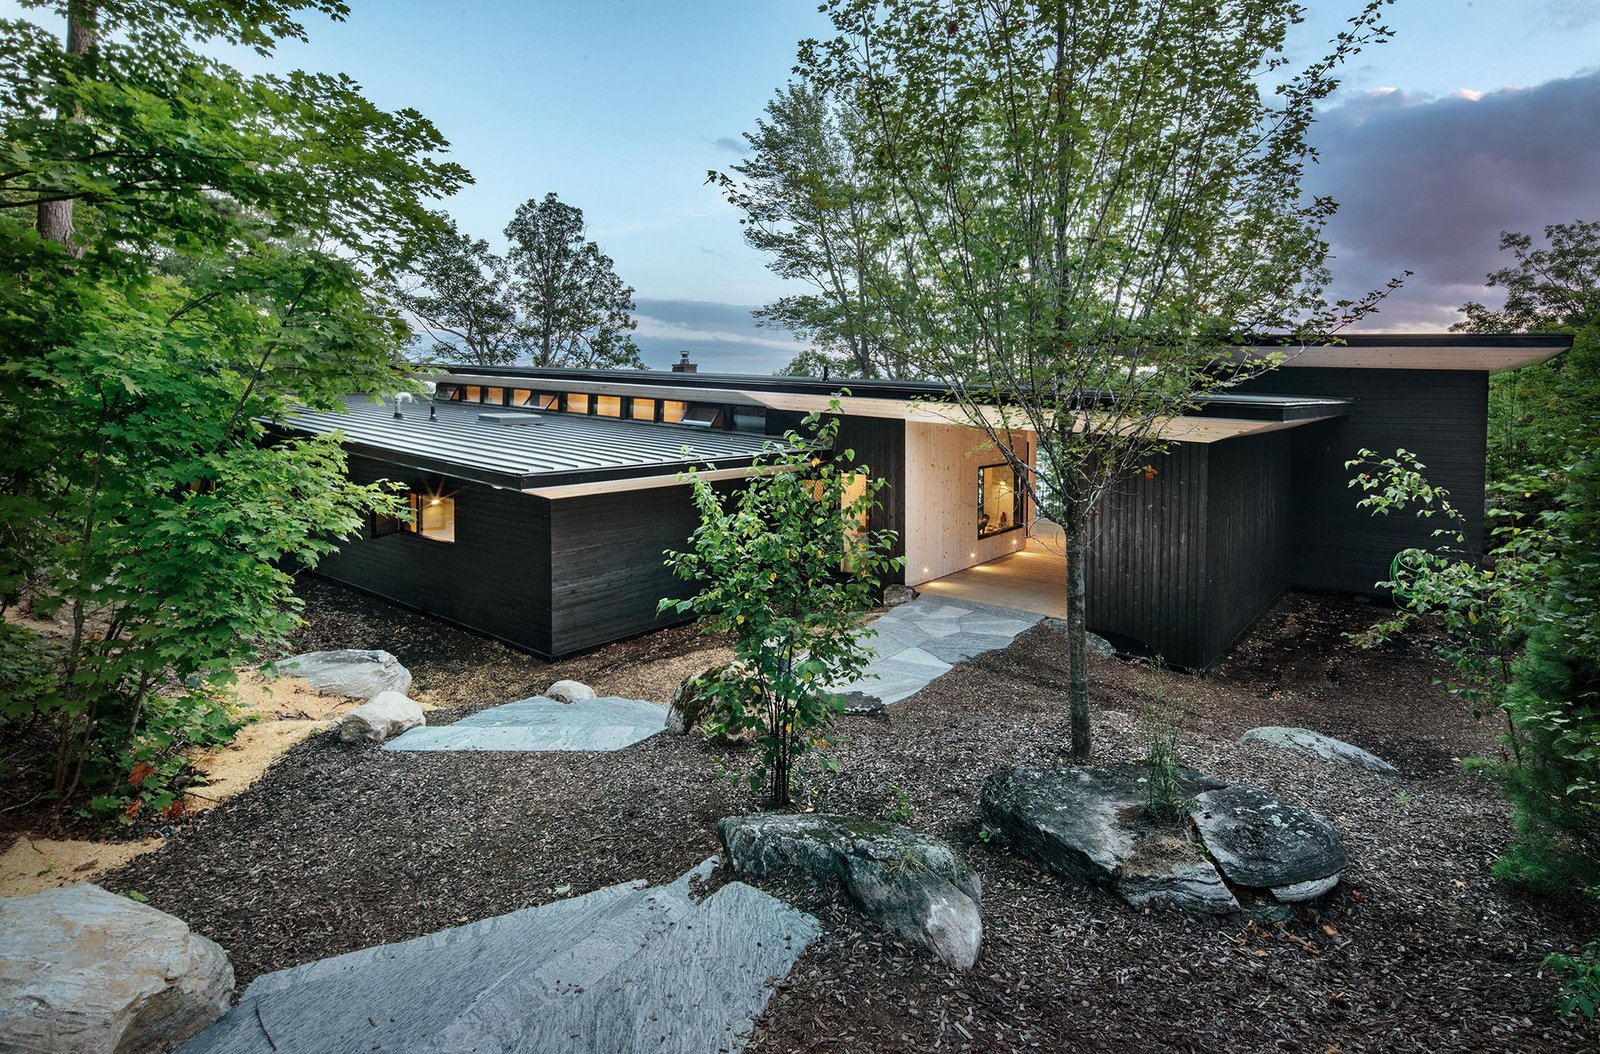 The home's three low-lying rooflines subtly emerge from the landscape.